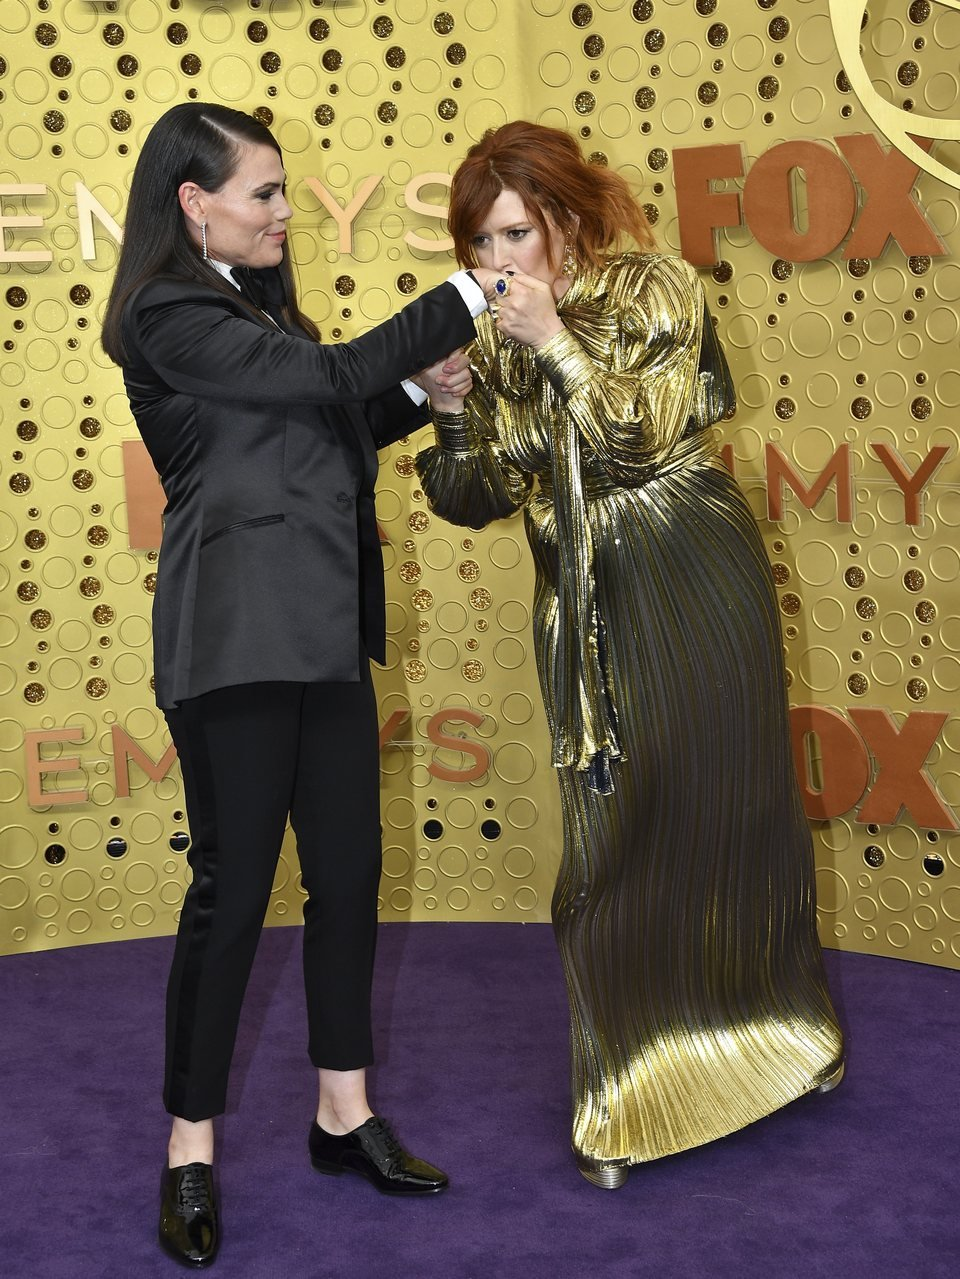 Natasha Lyone and Clea DuVall at the Emmy 2019 red carpet